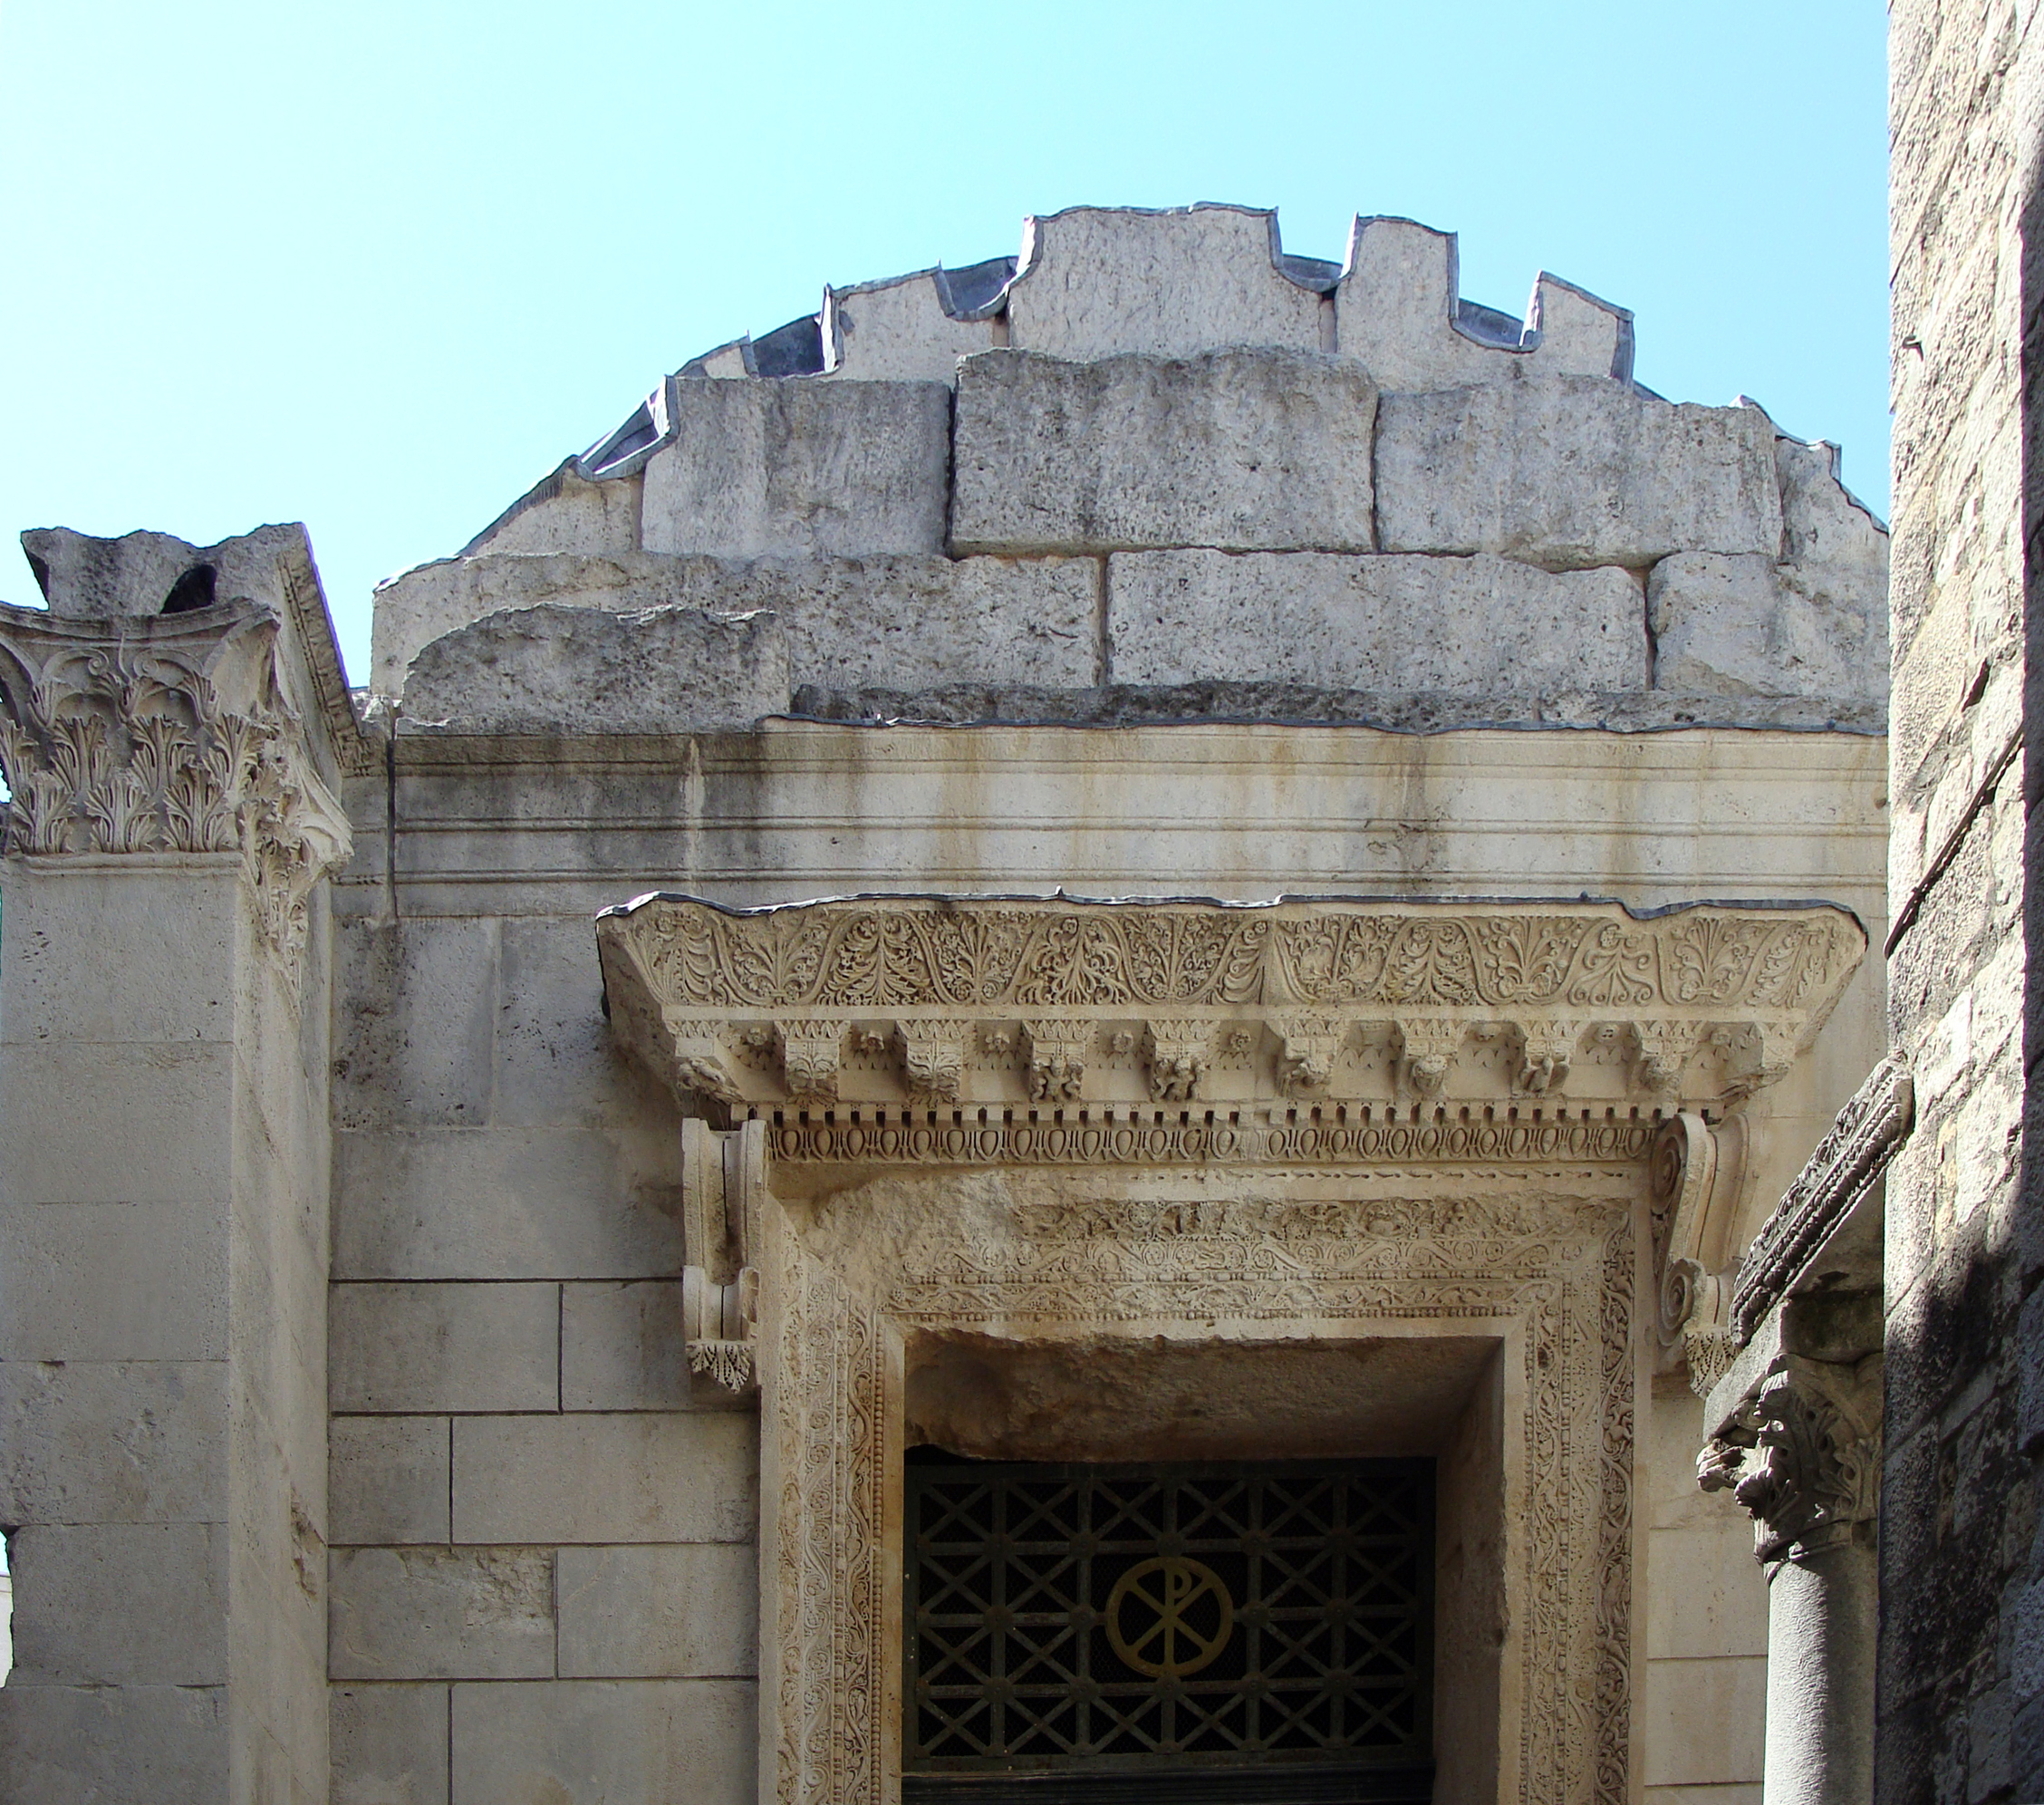 The Town Of Split In Croatia The Diocletian Palace